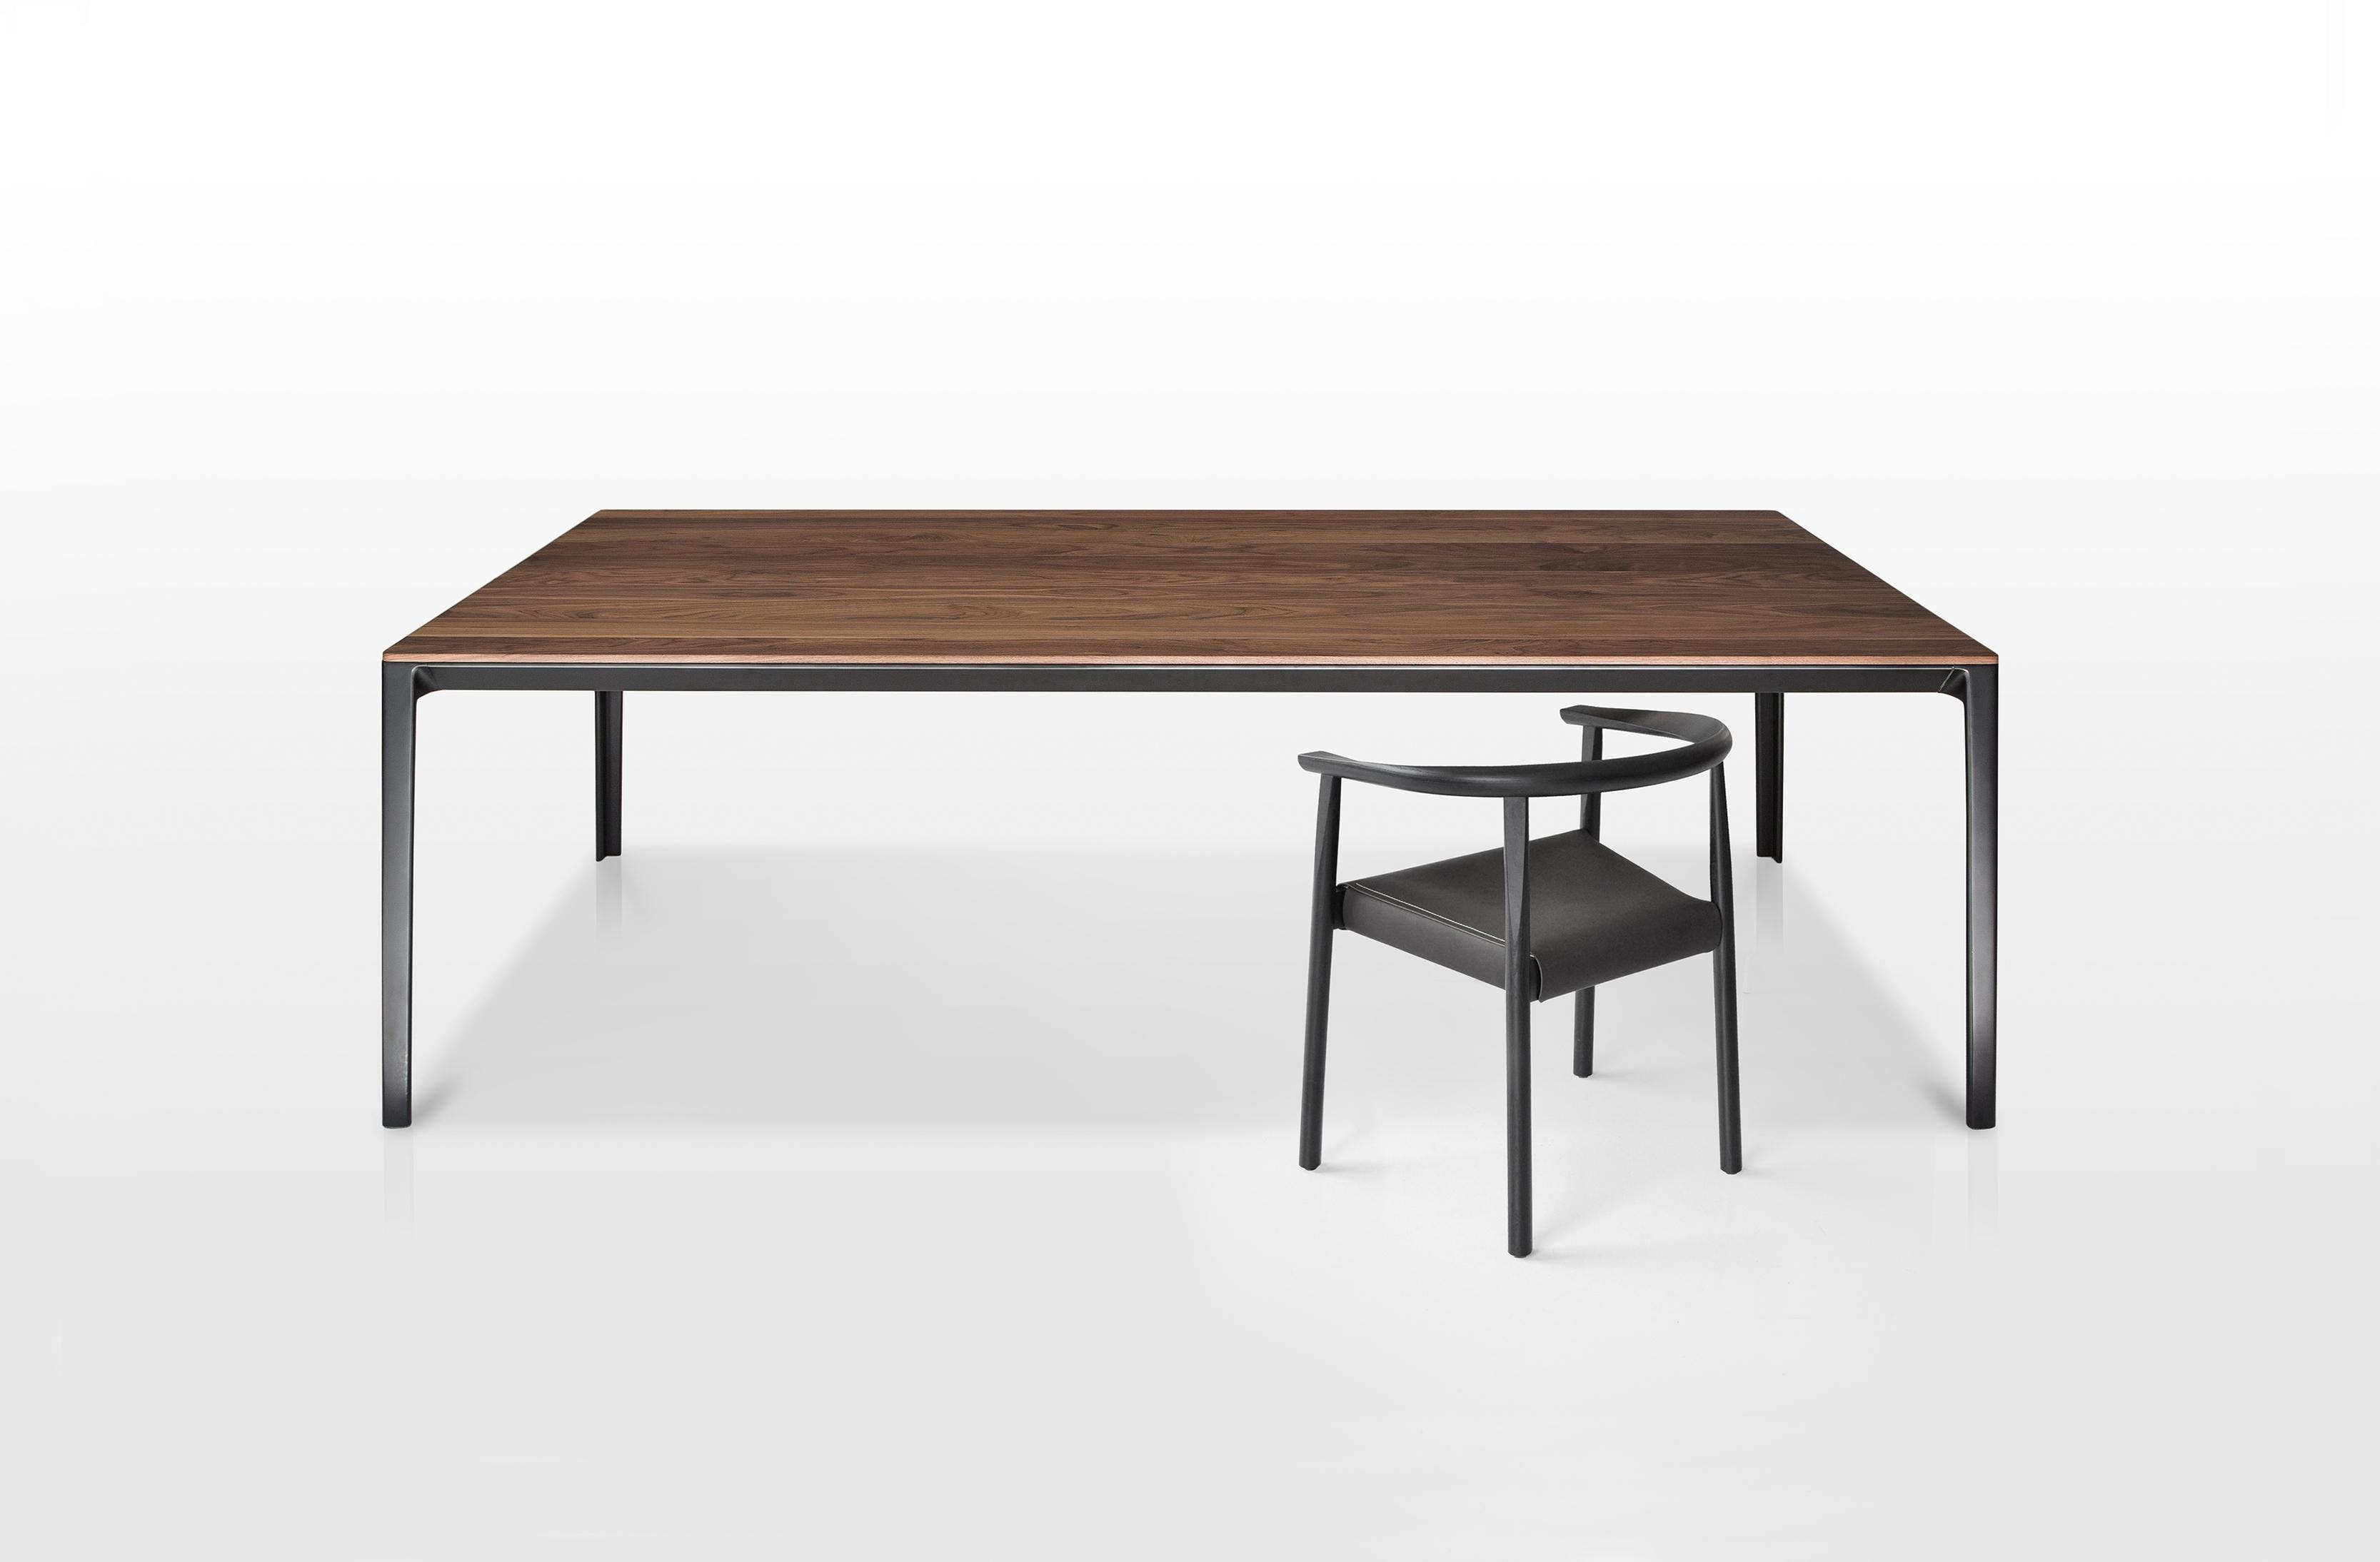 Able Table and Tokyo Chair by Bensen